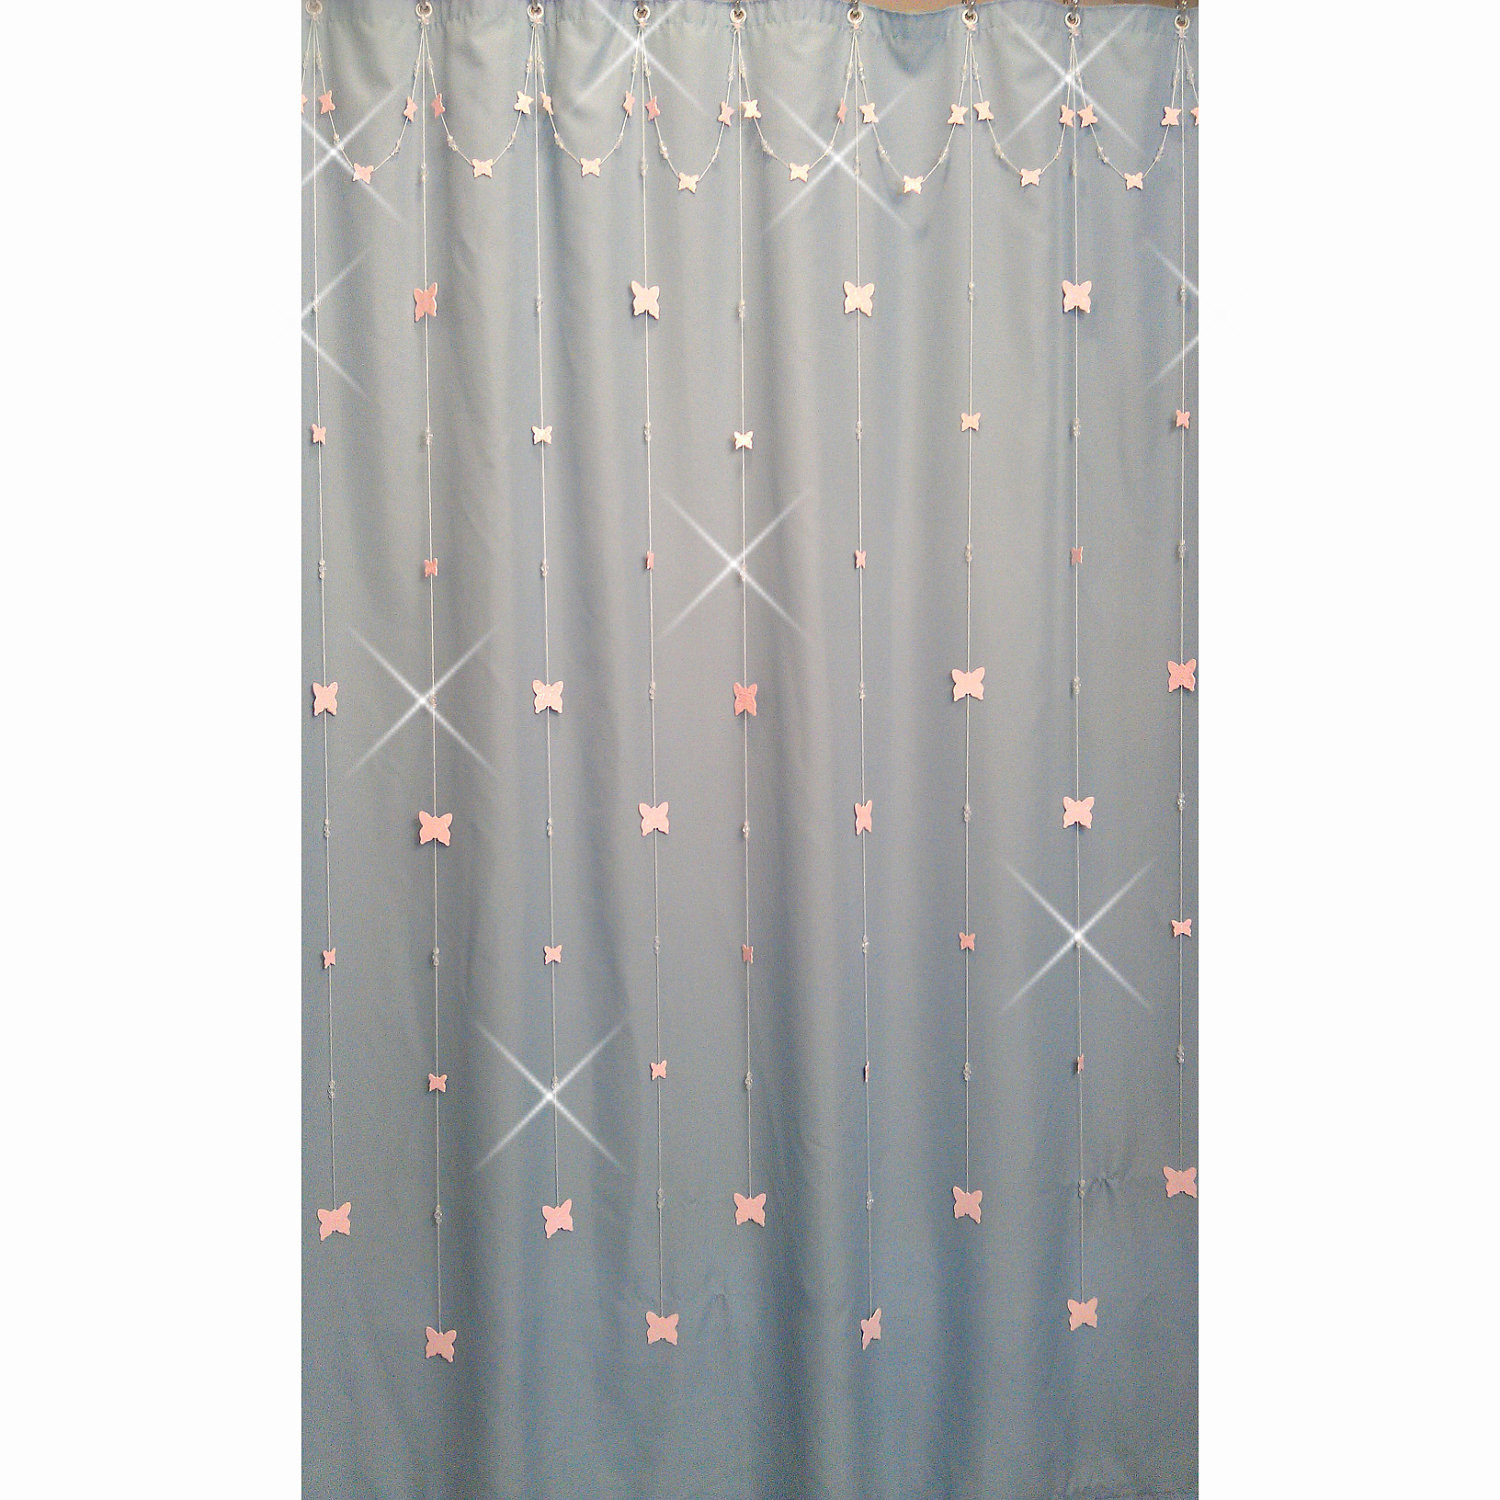 Shadez of Michelle: Shower Curtain Bling Pink Butterfly